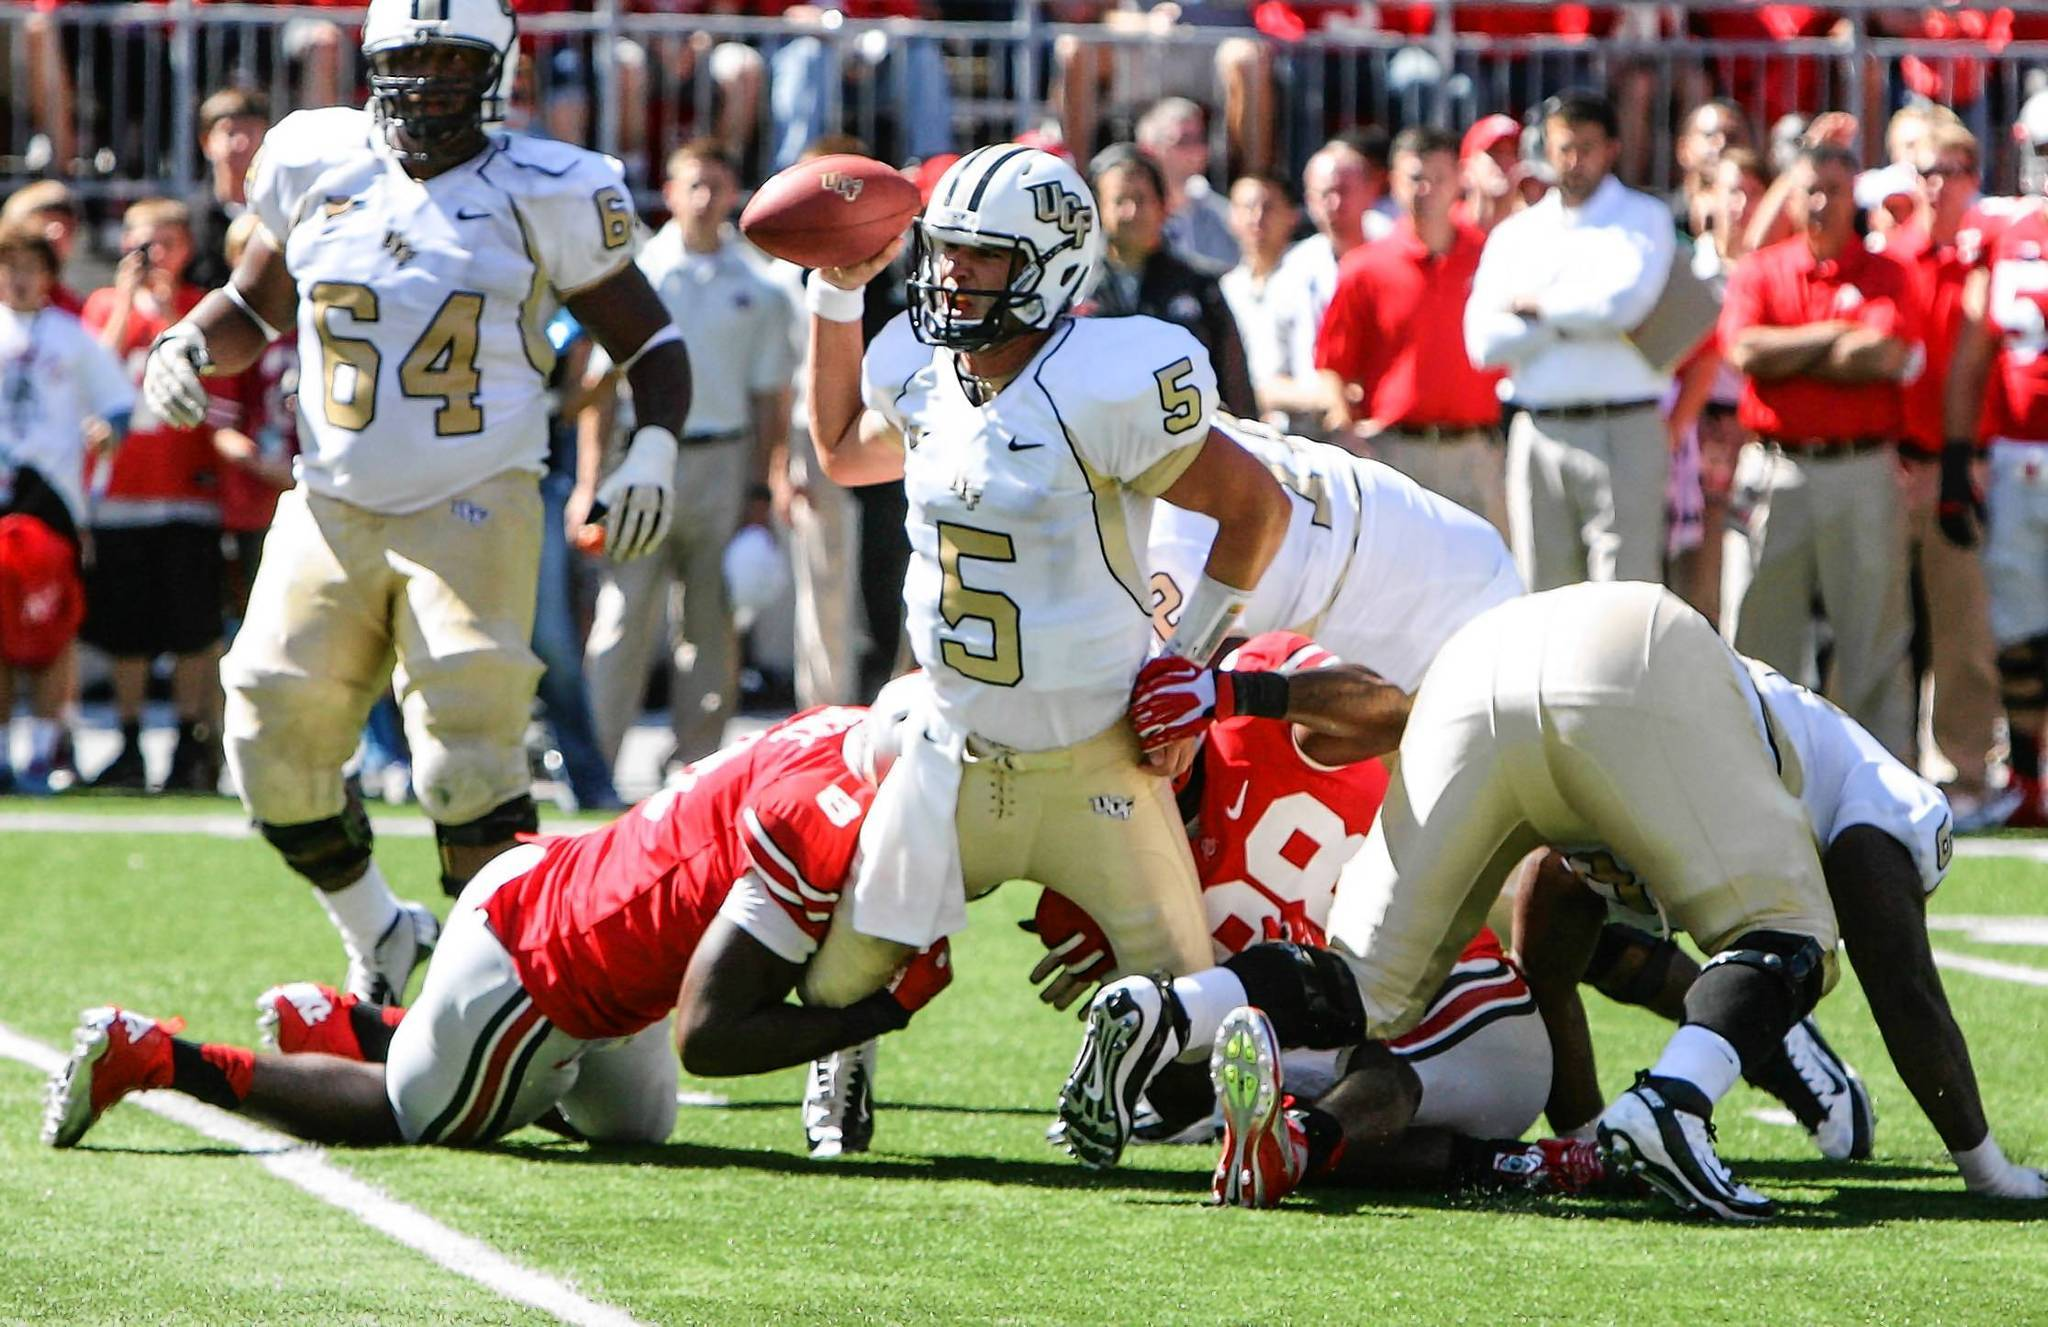 UCF quarterback Blake Bortles gets sacked in the final seconds of a nonconference game against Ohio State on Saturday, September 8, 2012, in Columbus, Ohio.